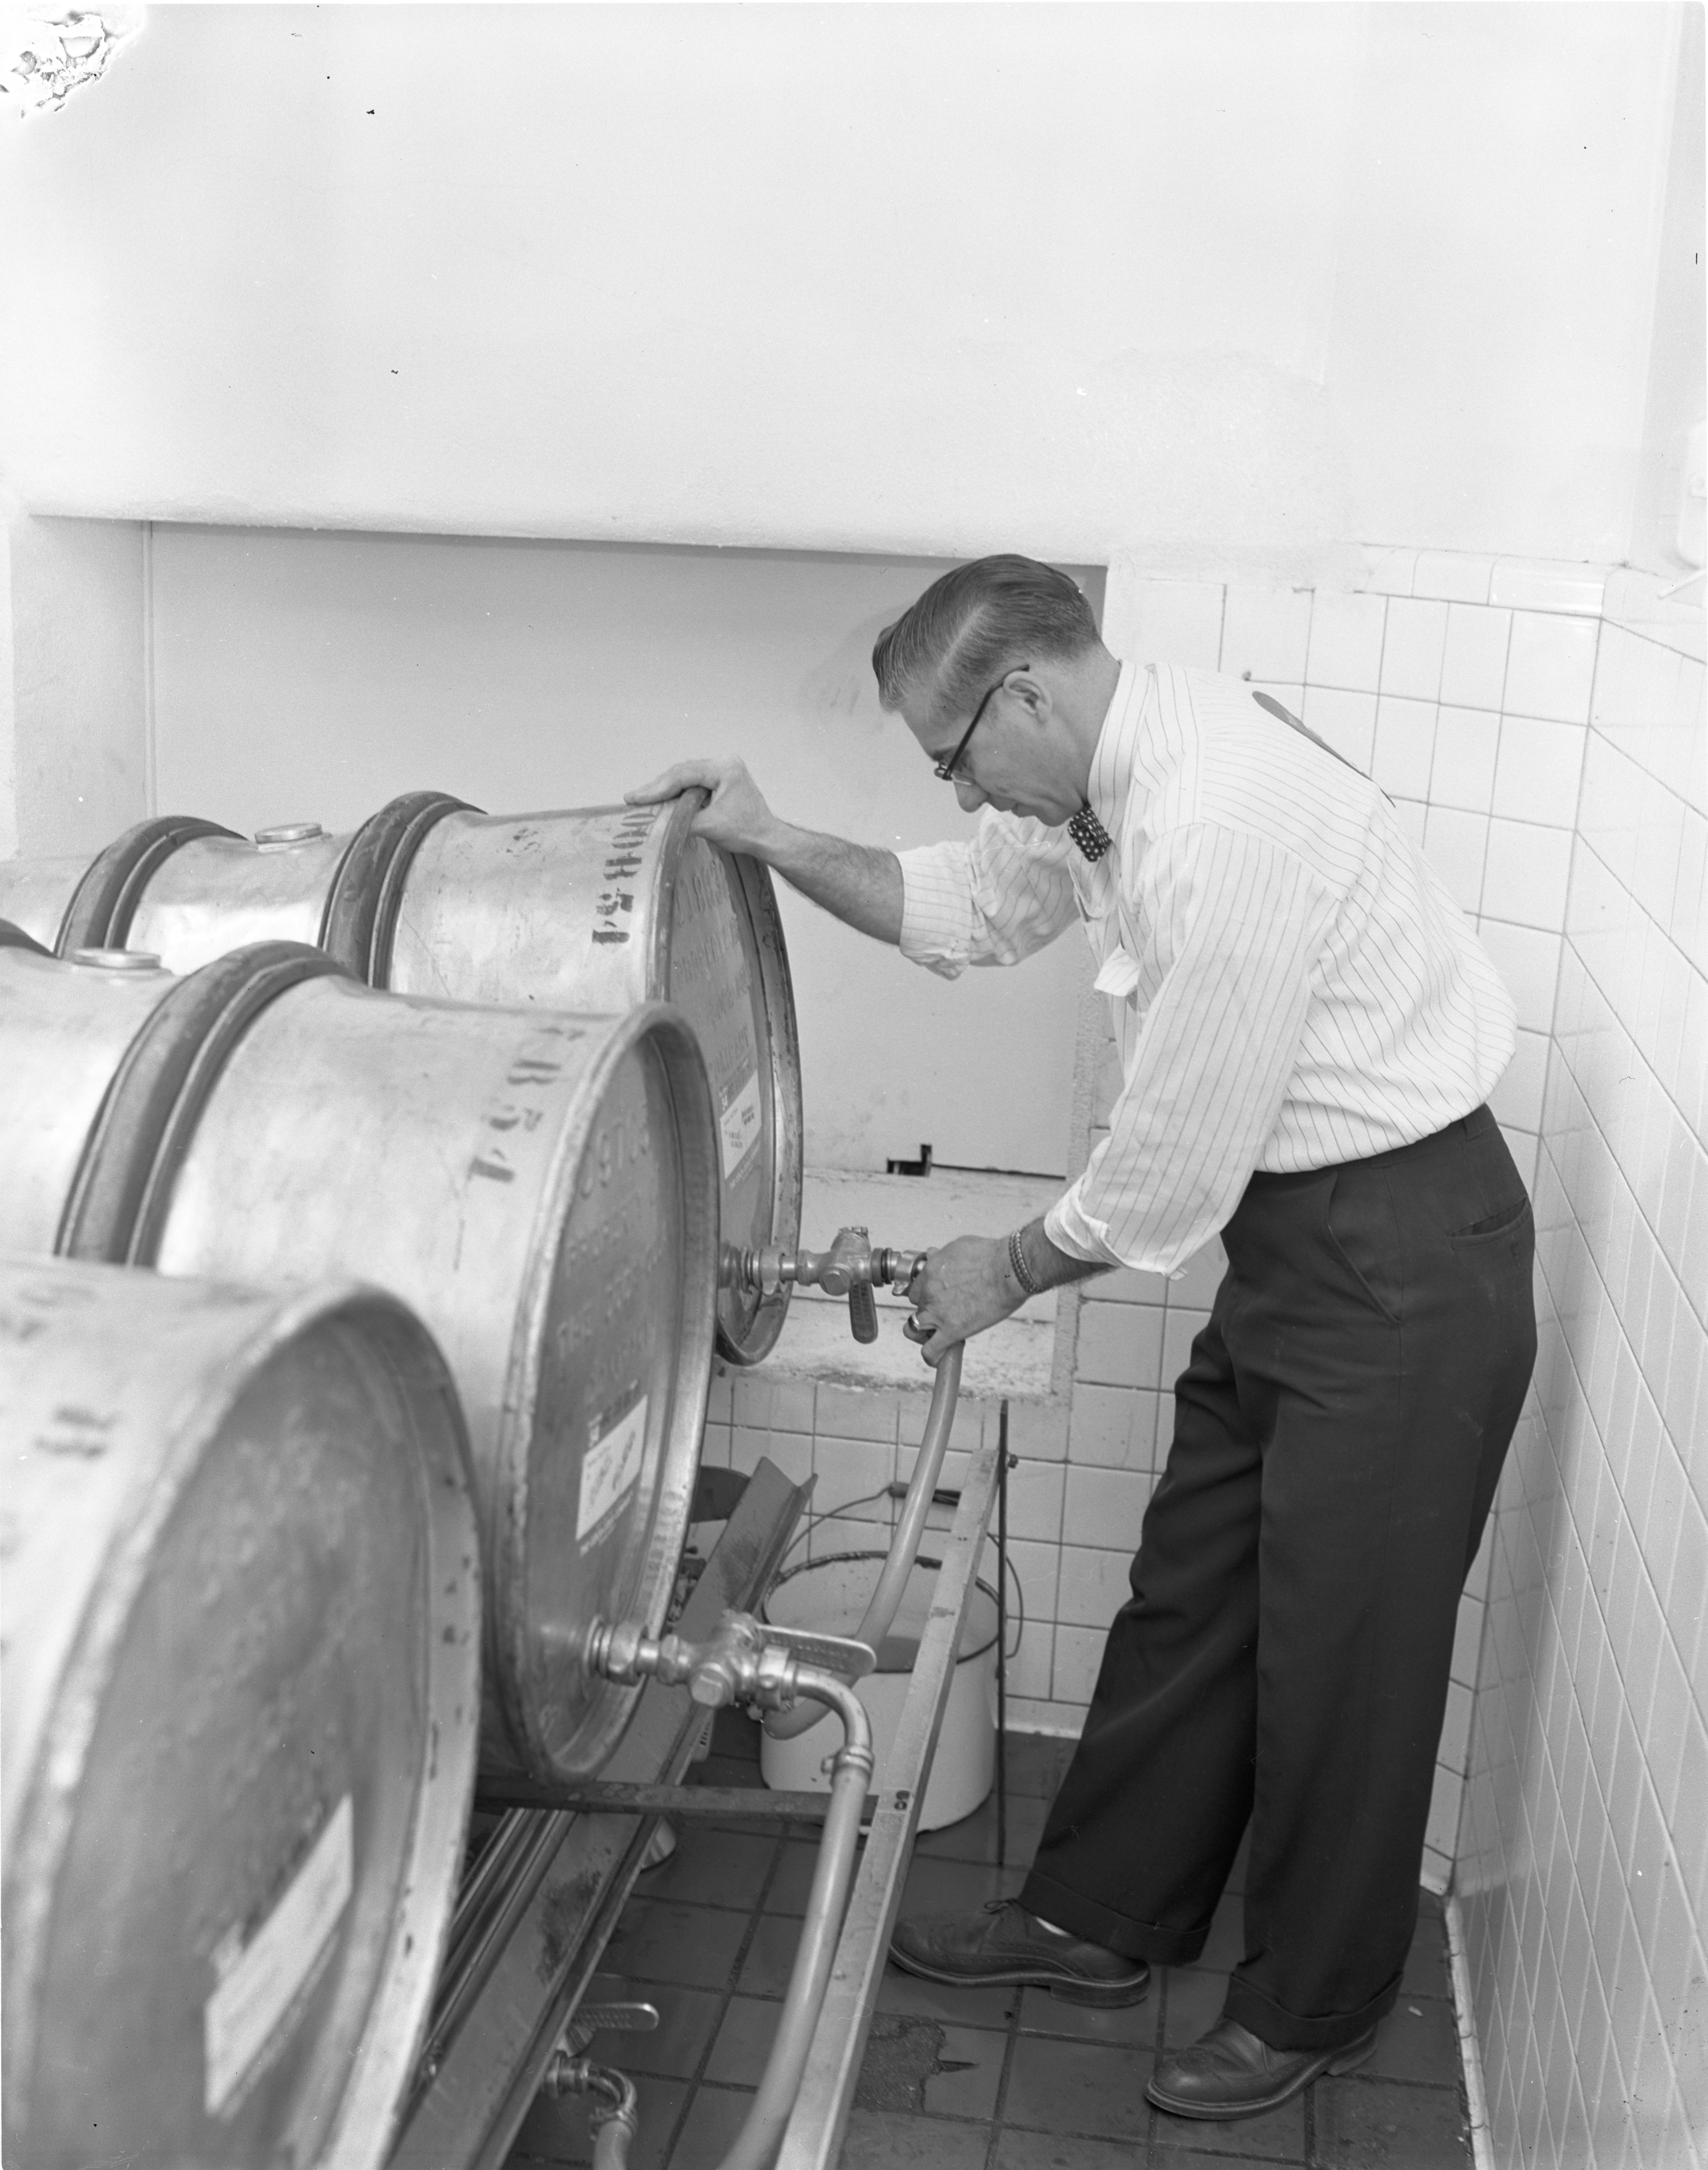 An Employee Tends To Steel Barrels Of Coca-Cola Syrup At The Kleis Beverage Co., January 1956 image